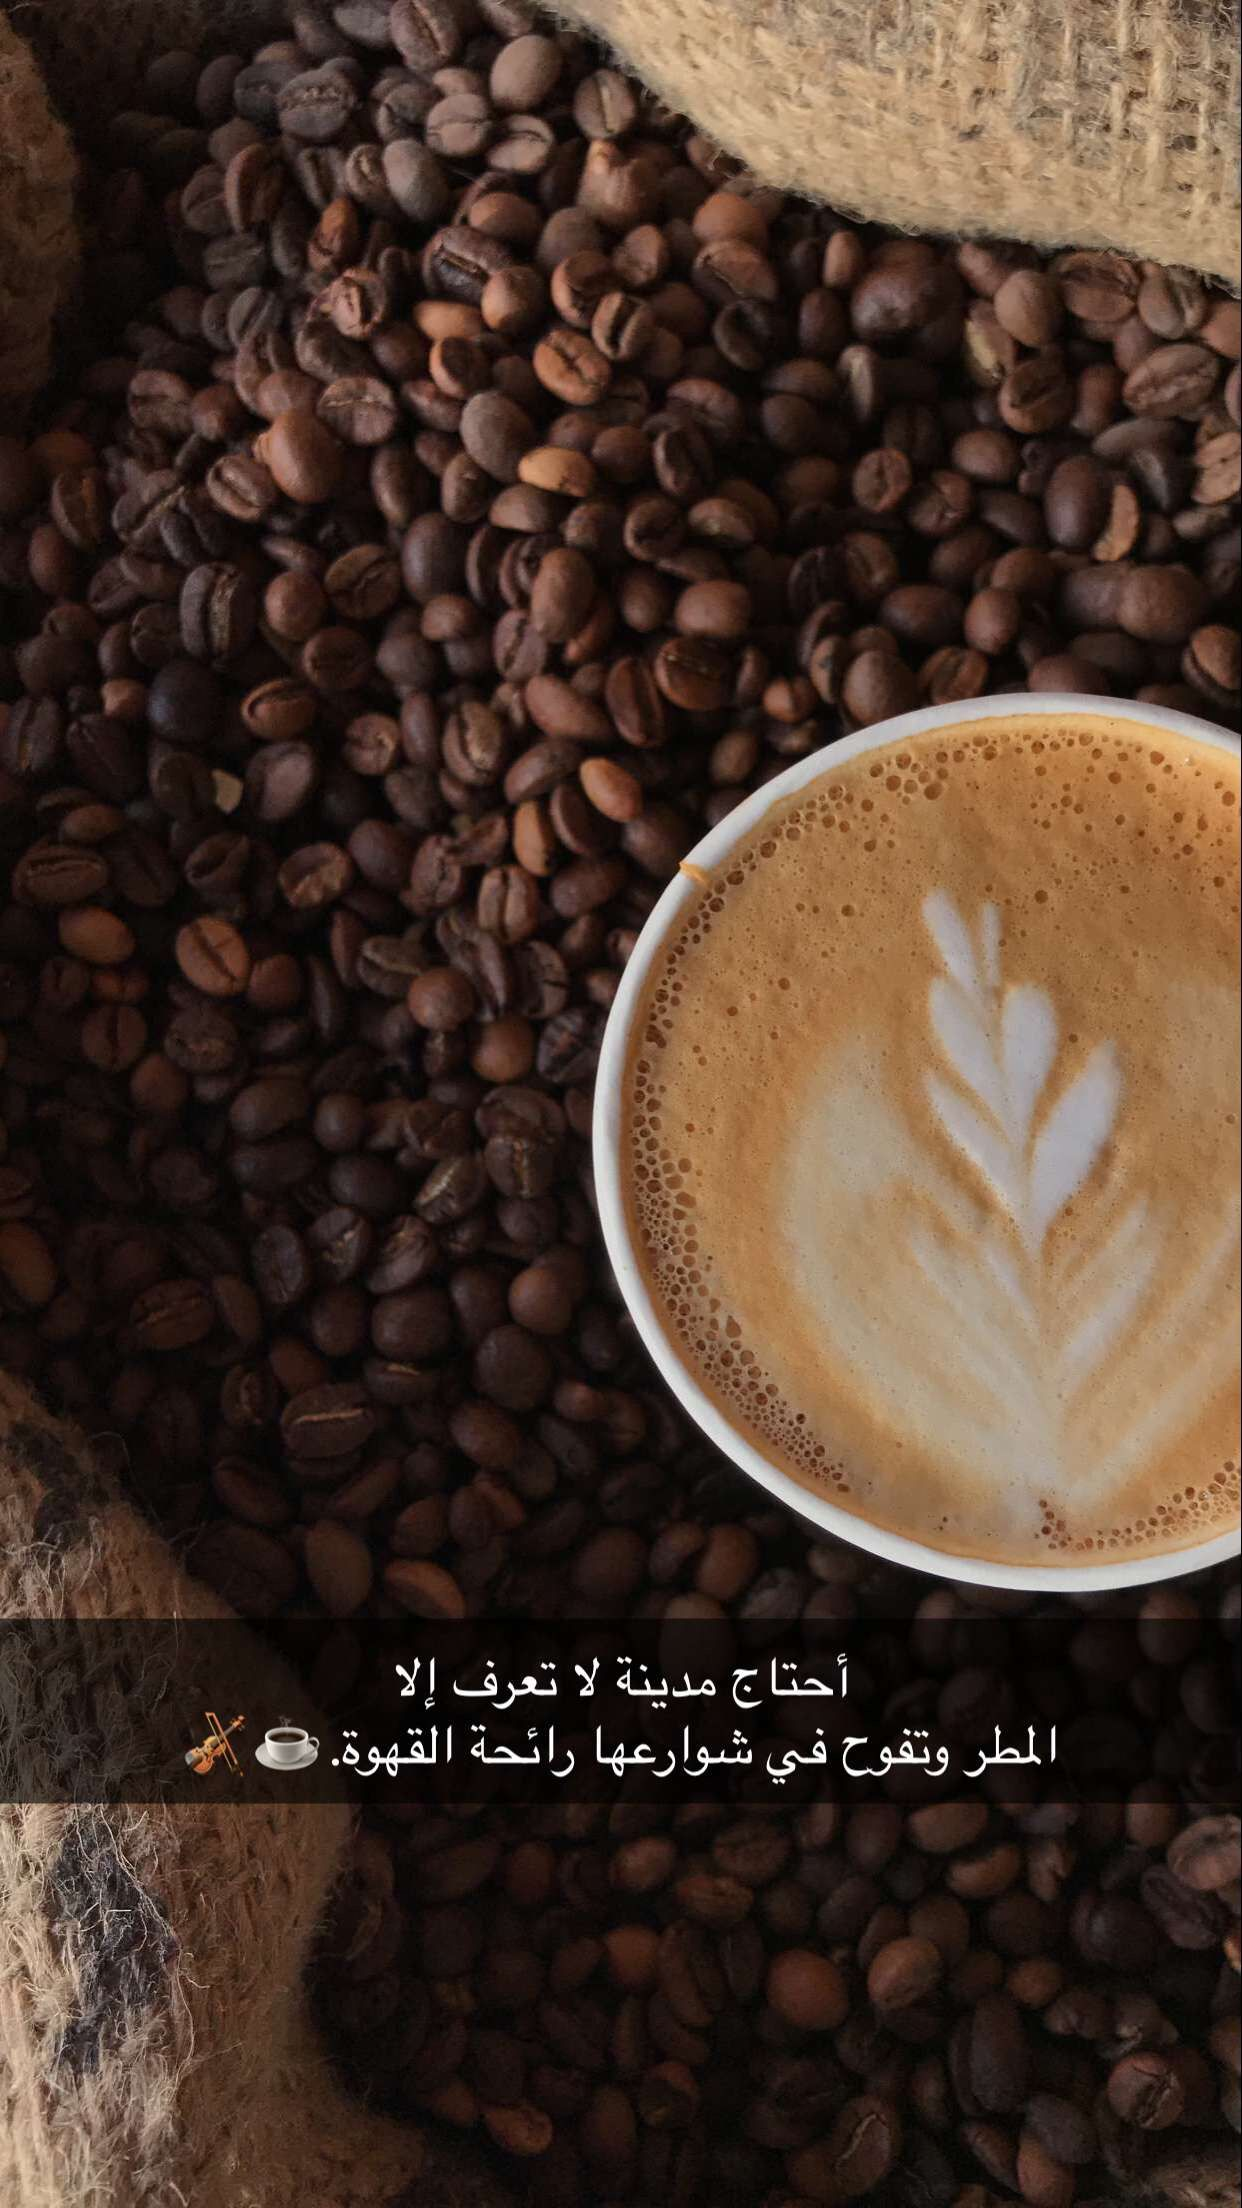 Arabic Quotes Coffee Tableware